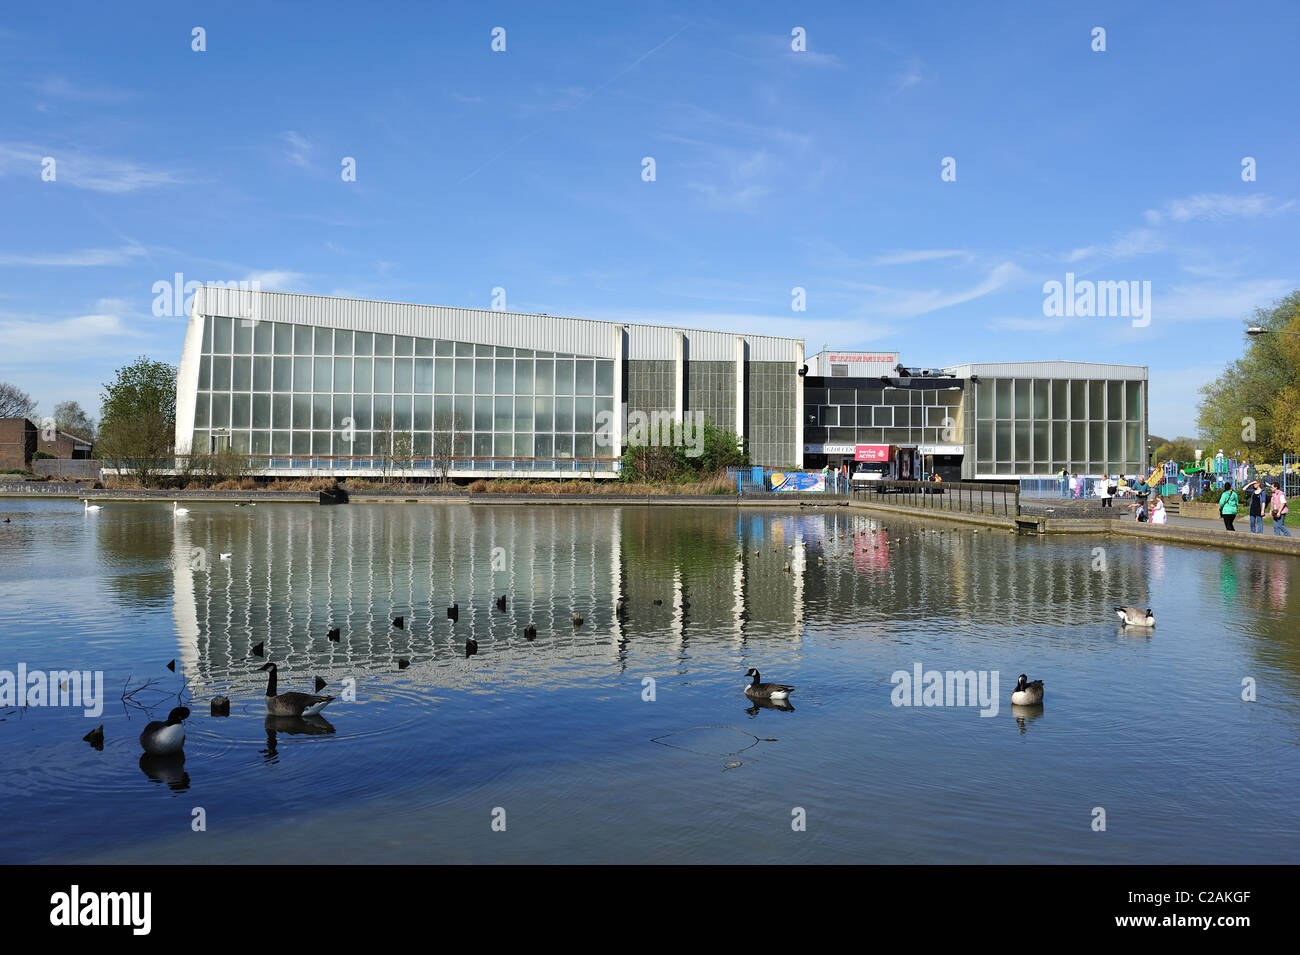 Gloucester park swimming pool basildon essex stock photo royalty free image 35884927 alamy for Swimming pools near gloucester